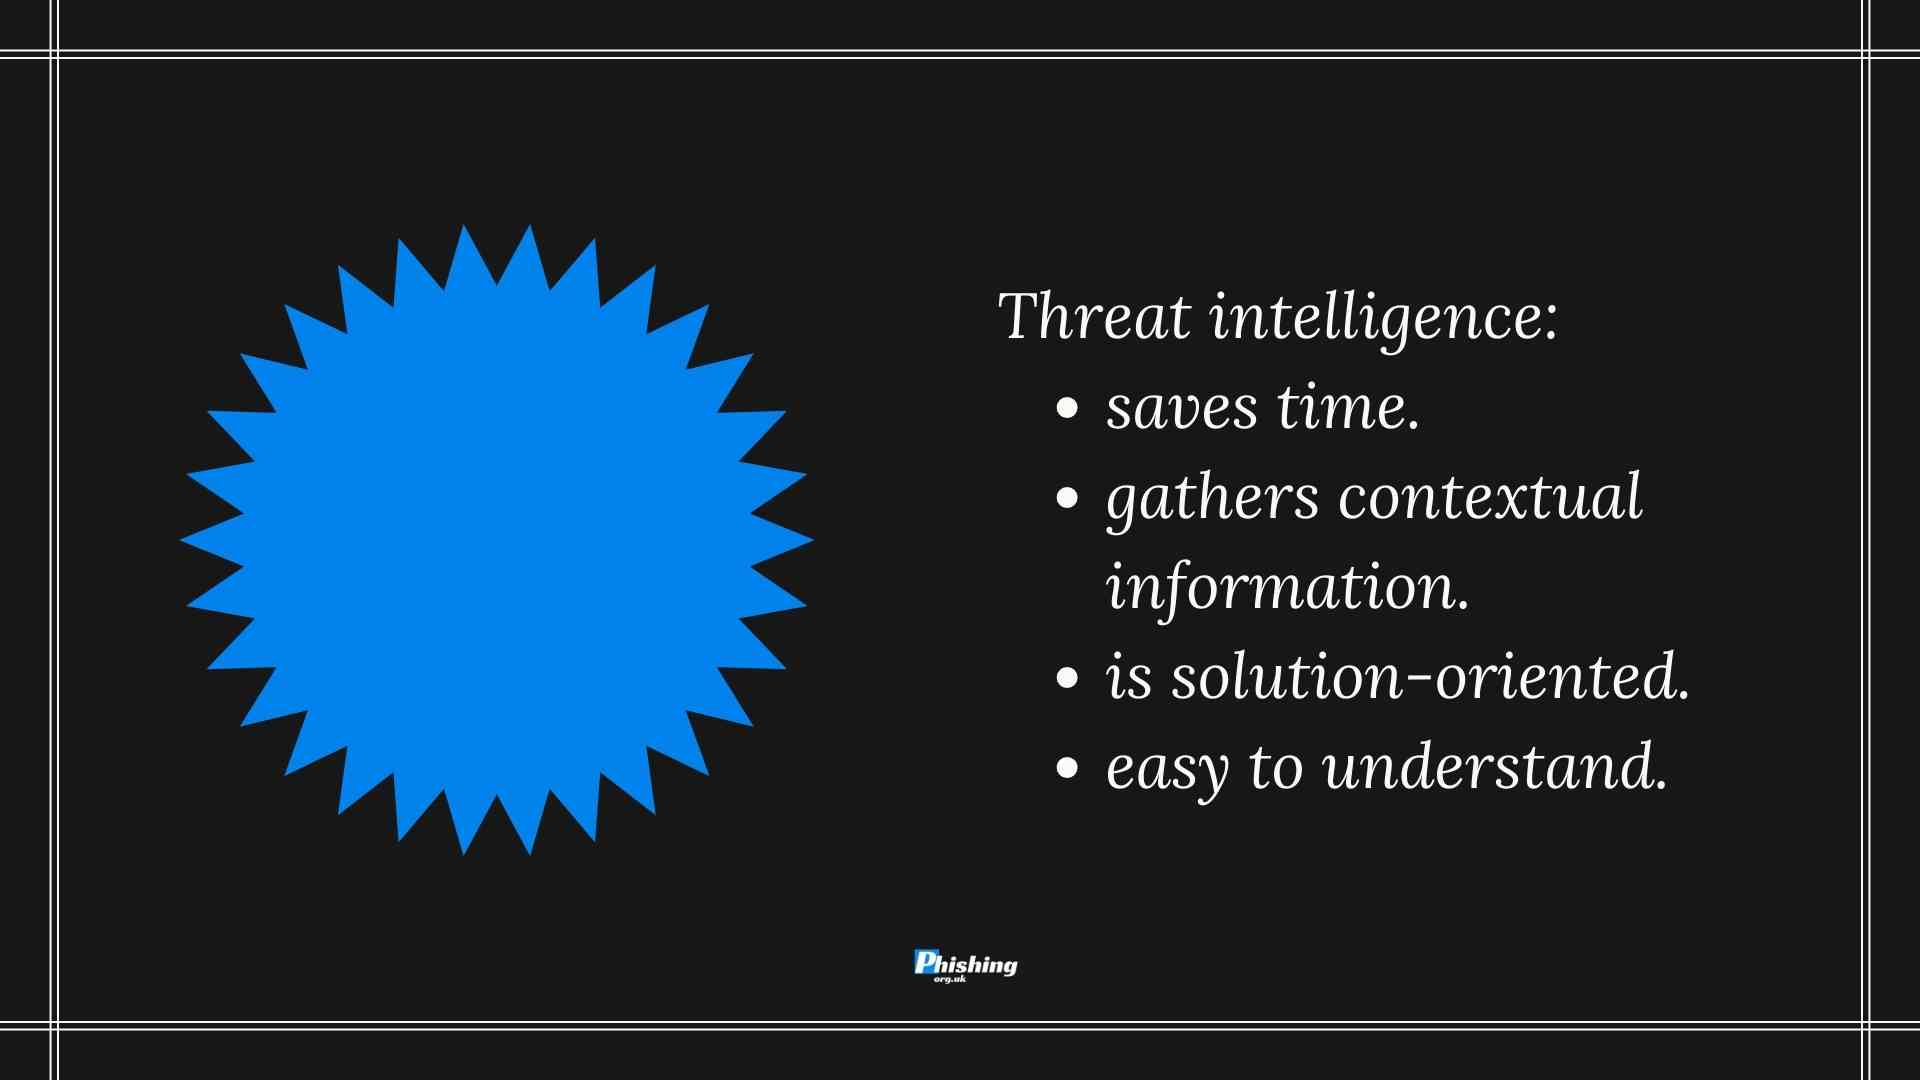 What Is Threat Intelligence and What Does It Provide